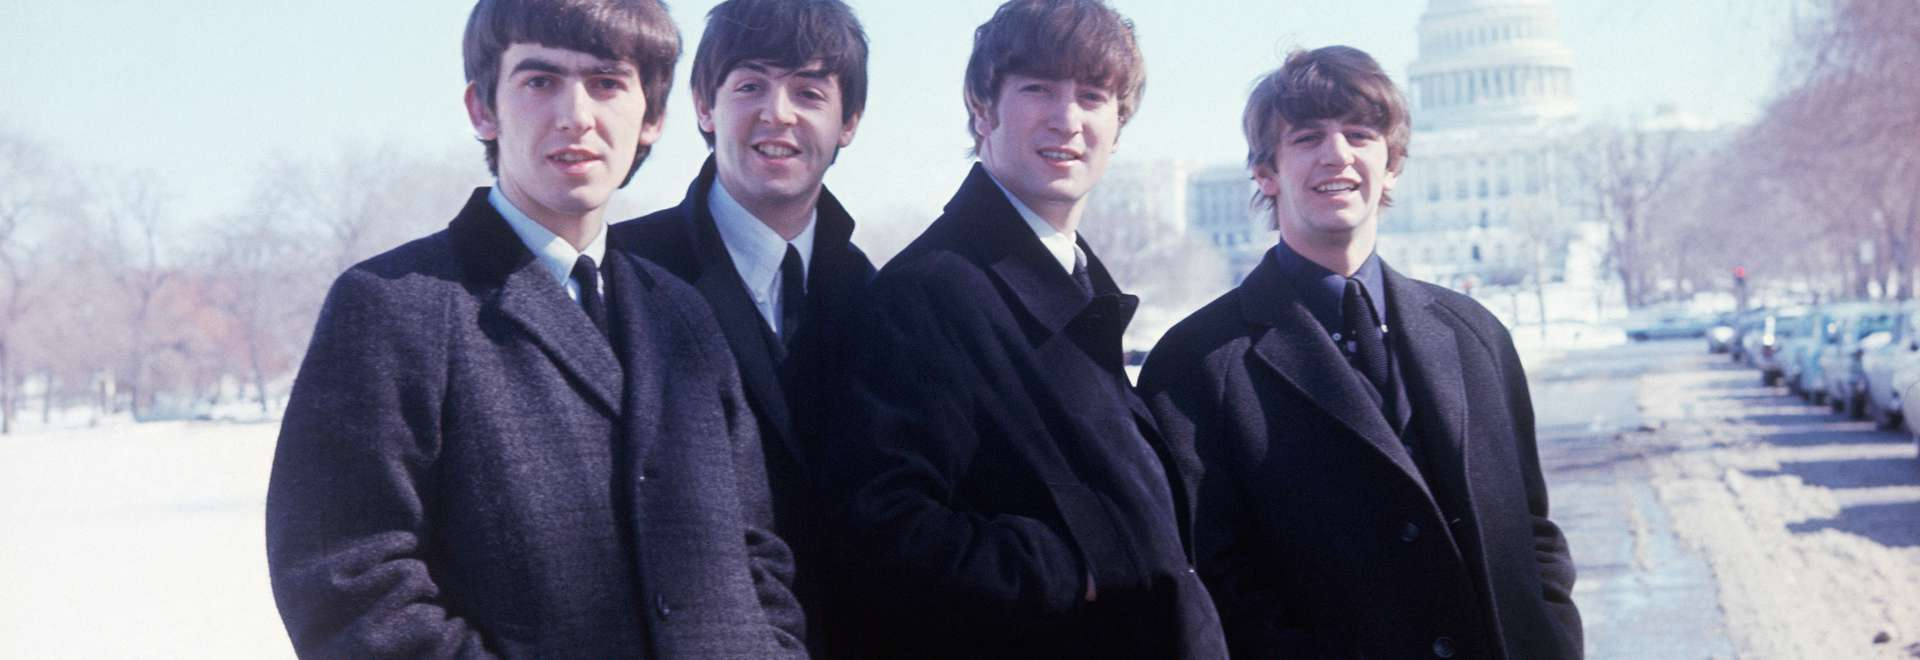 The Beatles: Eight Days a Week - The Touring Years Feature Image